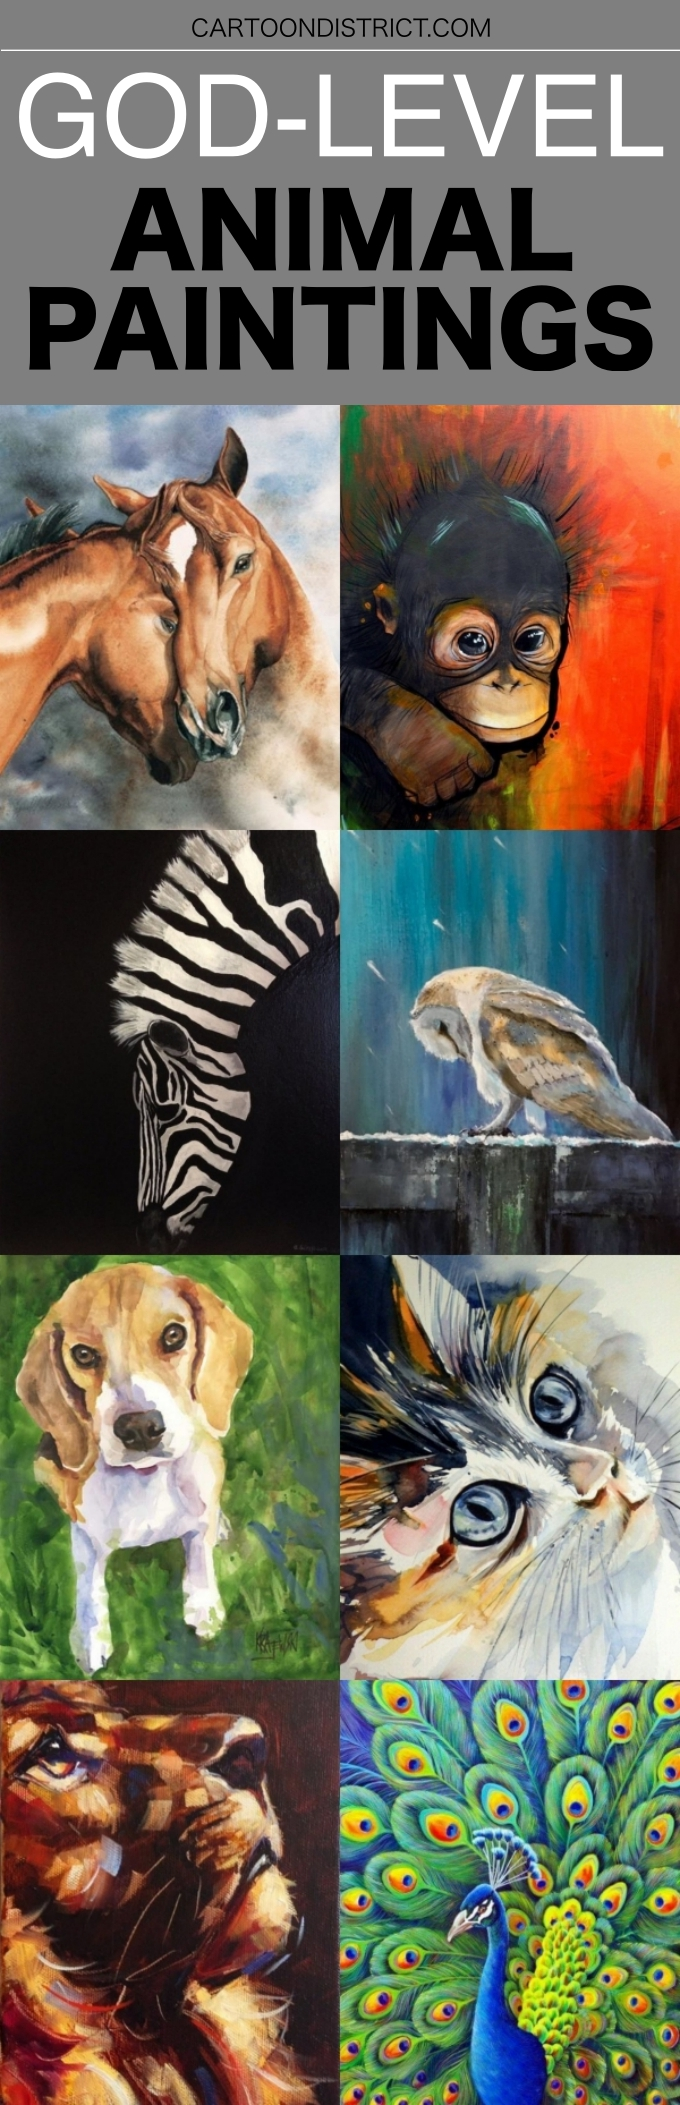 God Level Animal Paintings